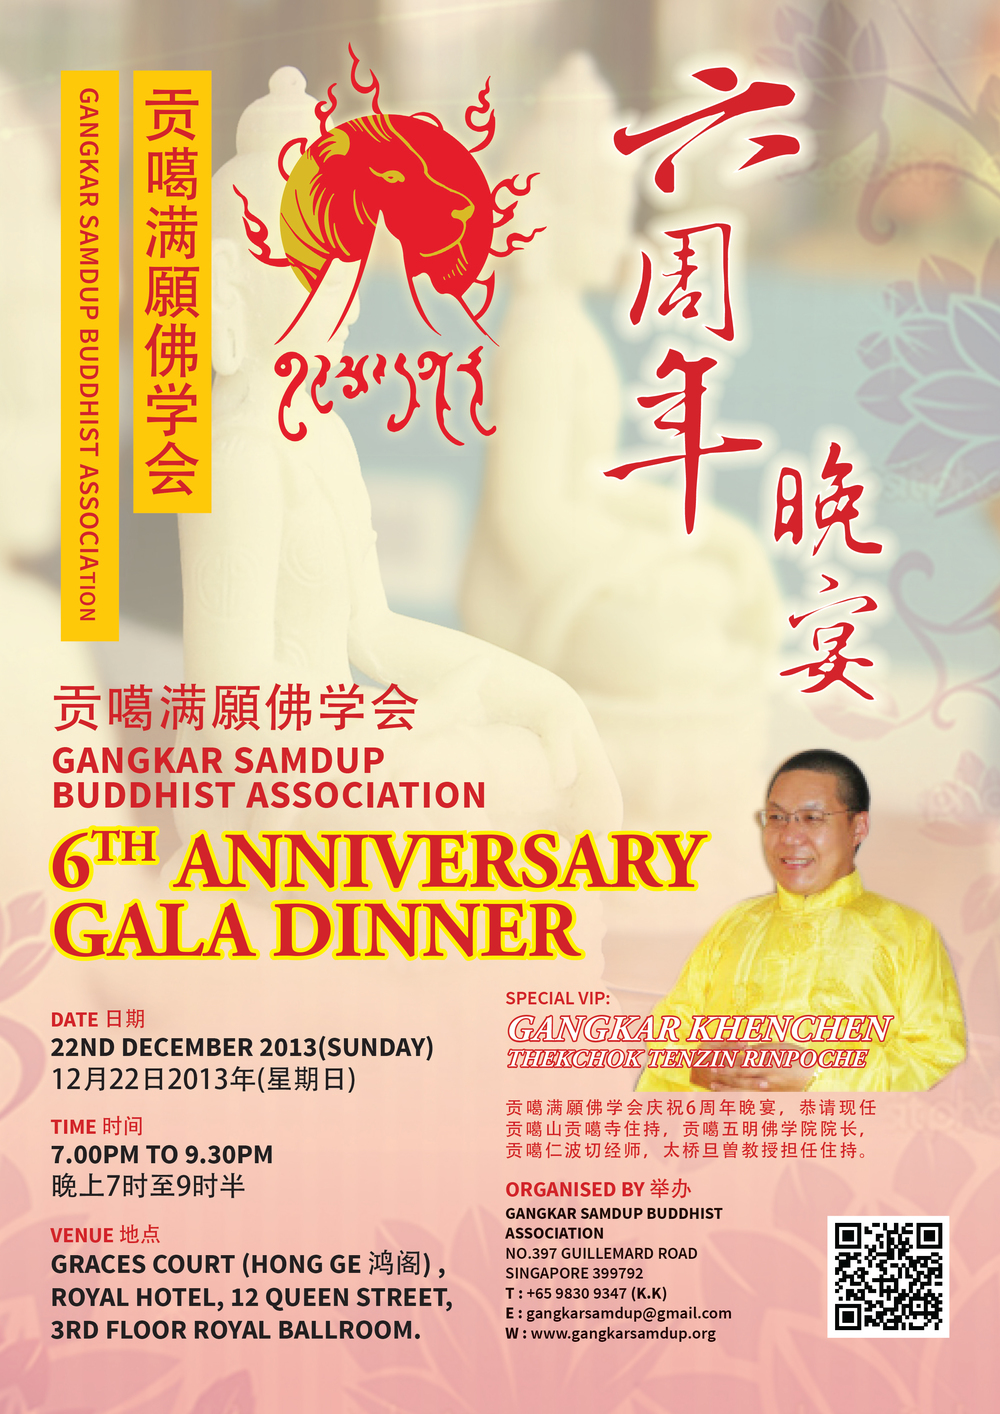 Gangkar Samdup Buddhist Association 6th Anniversary Gala Dinner